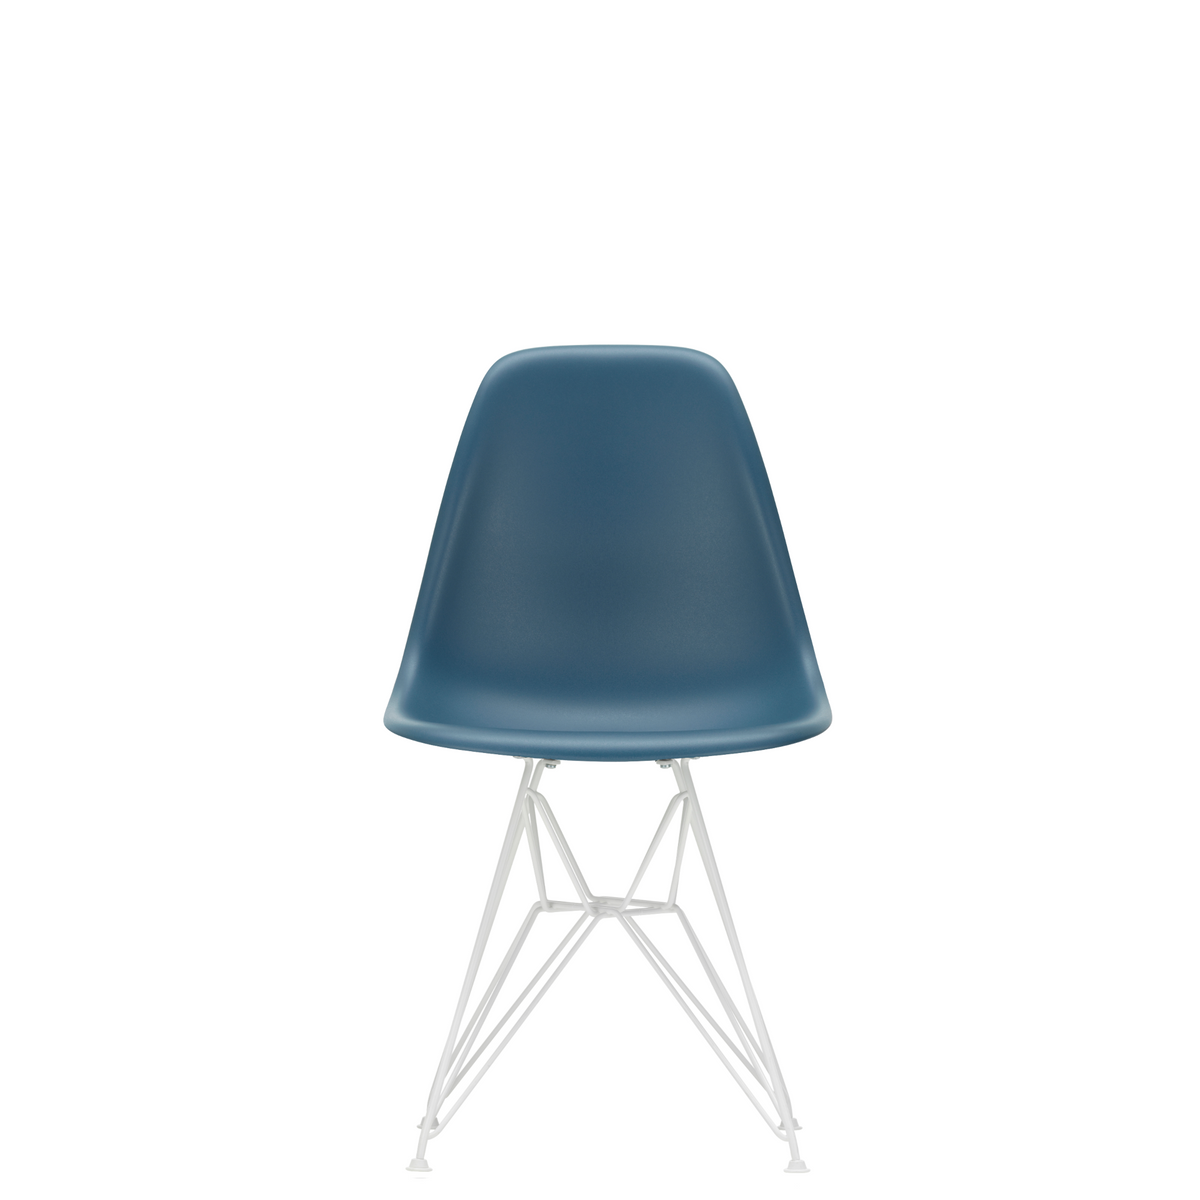 Vitra Eames Plastic Side Chair DSR Powder Coated for Outdoor Use Sea Blue Shell White Powdercoated Base